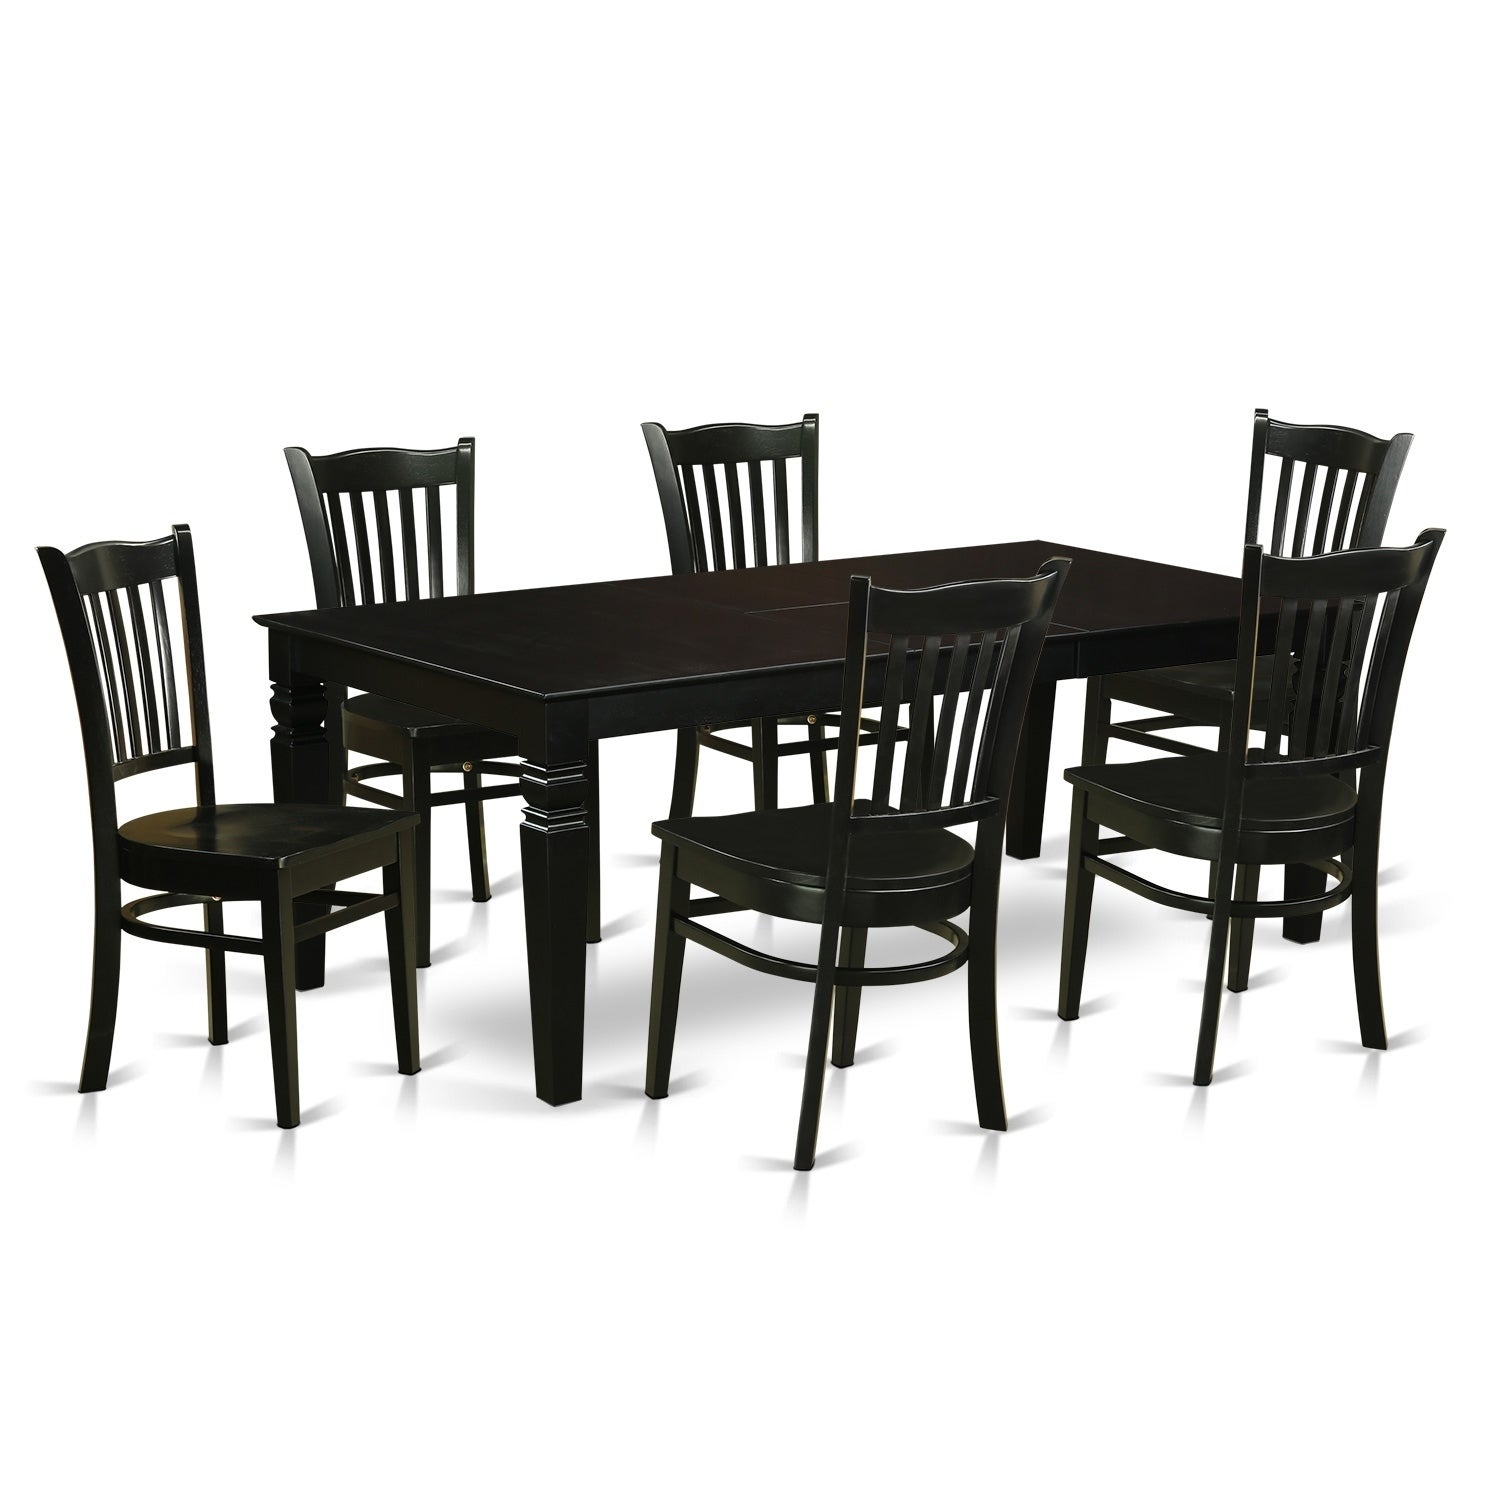 LGG5-BLK-W 5 Pc Dining Room set with a Table and 4 Kitchen Chairs | eBay